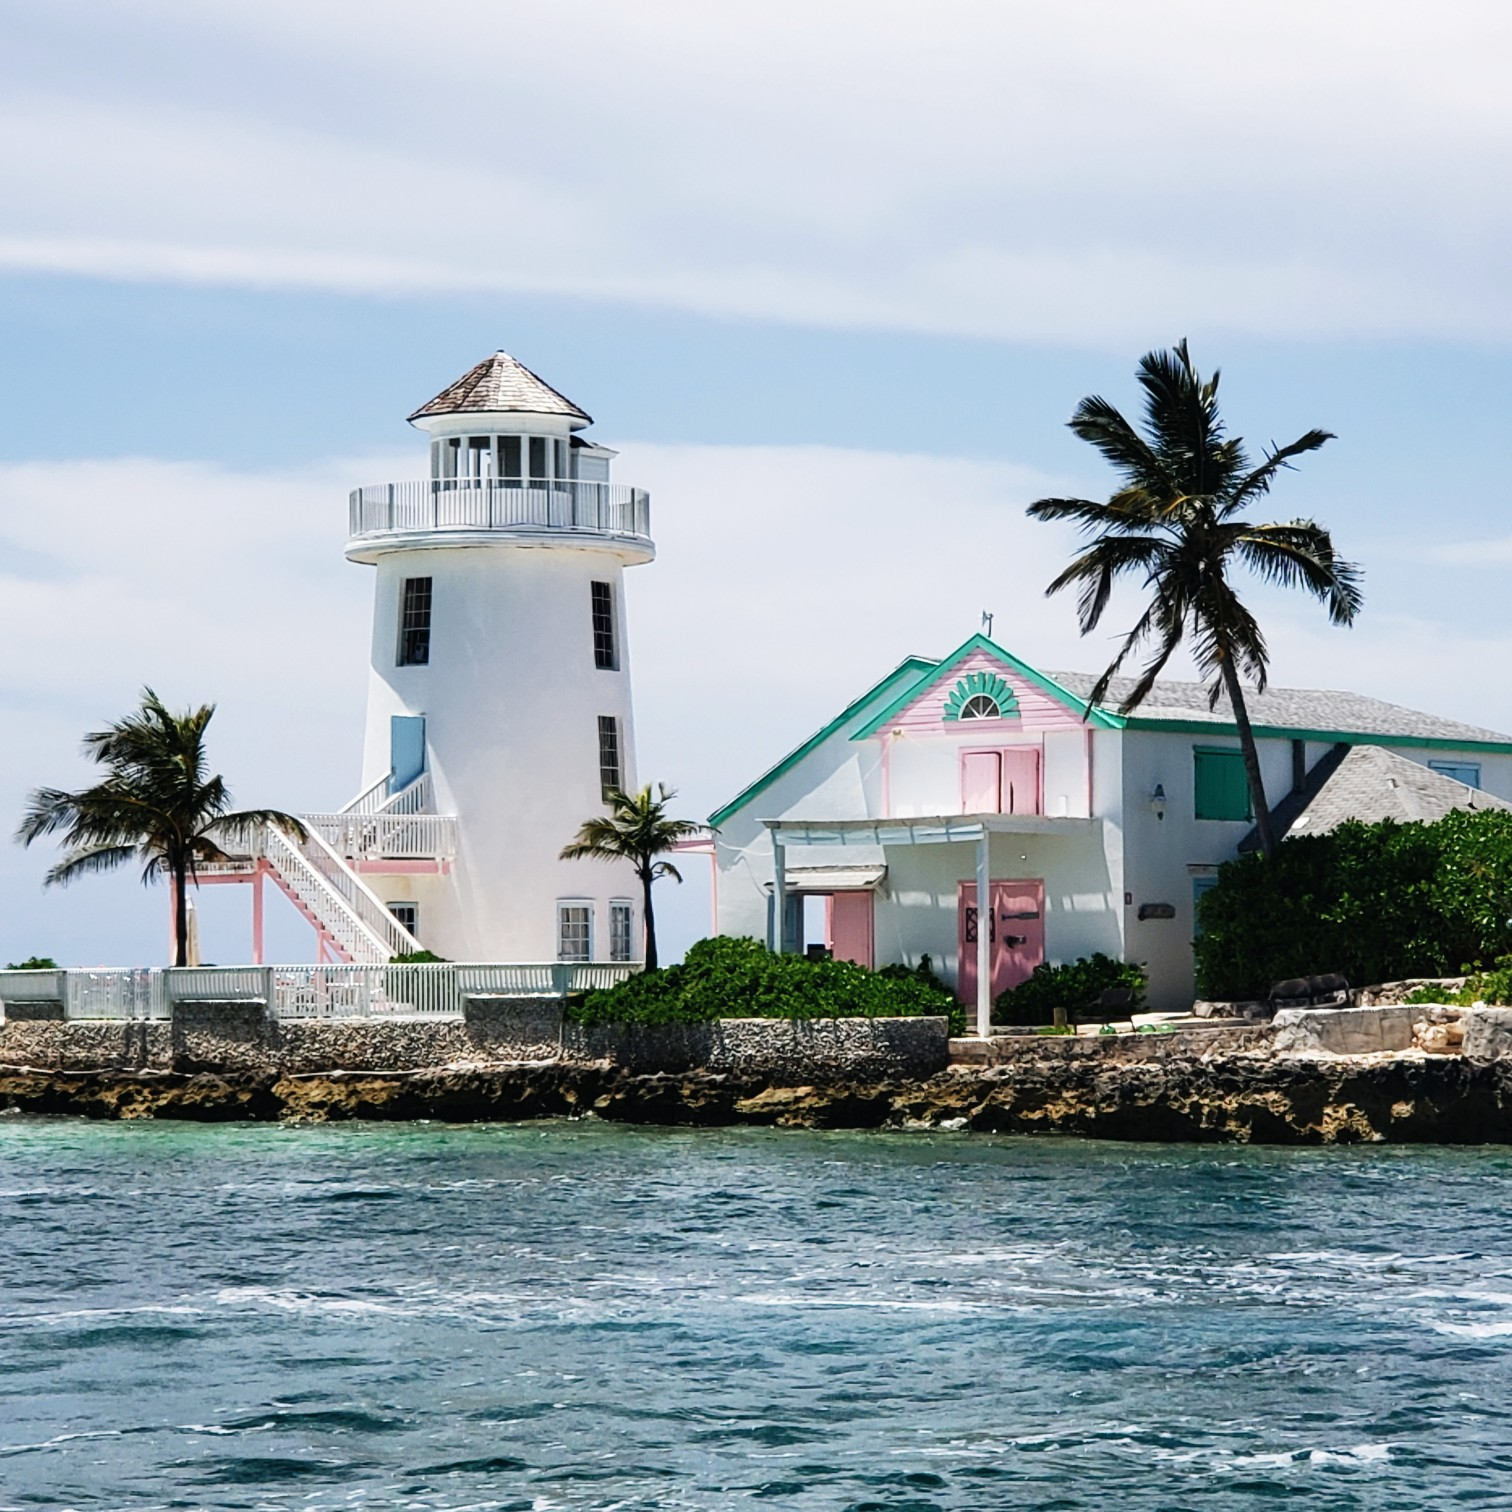 Colorful Light House Private Island Pearl Island Bahamas